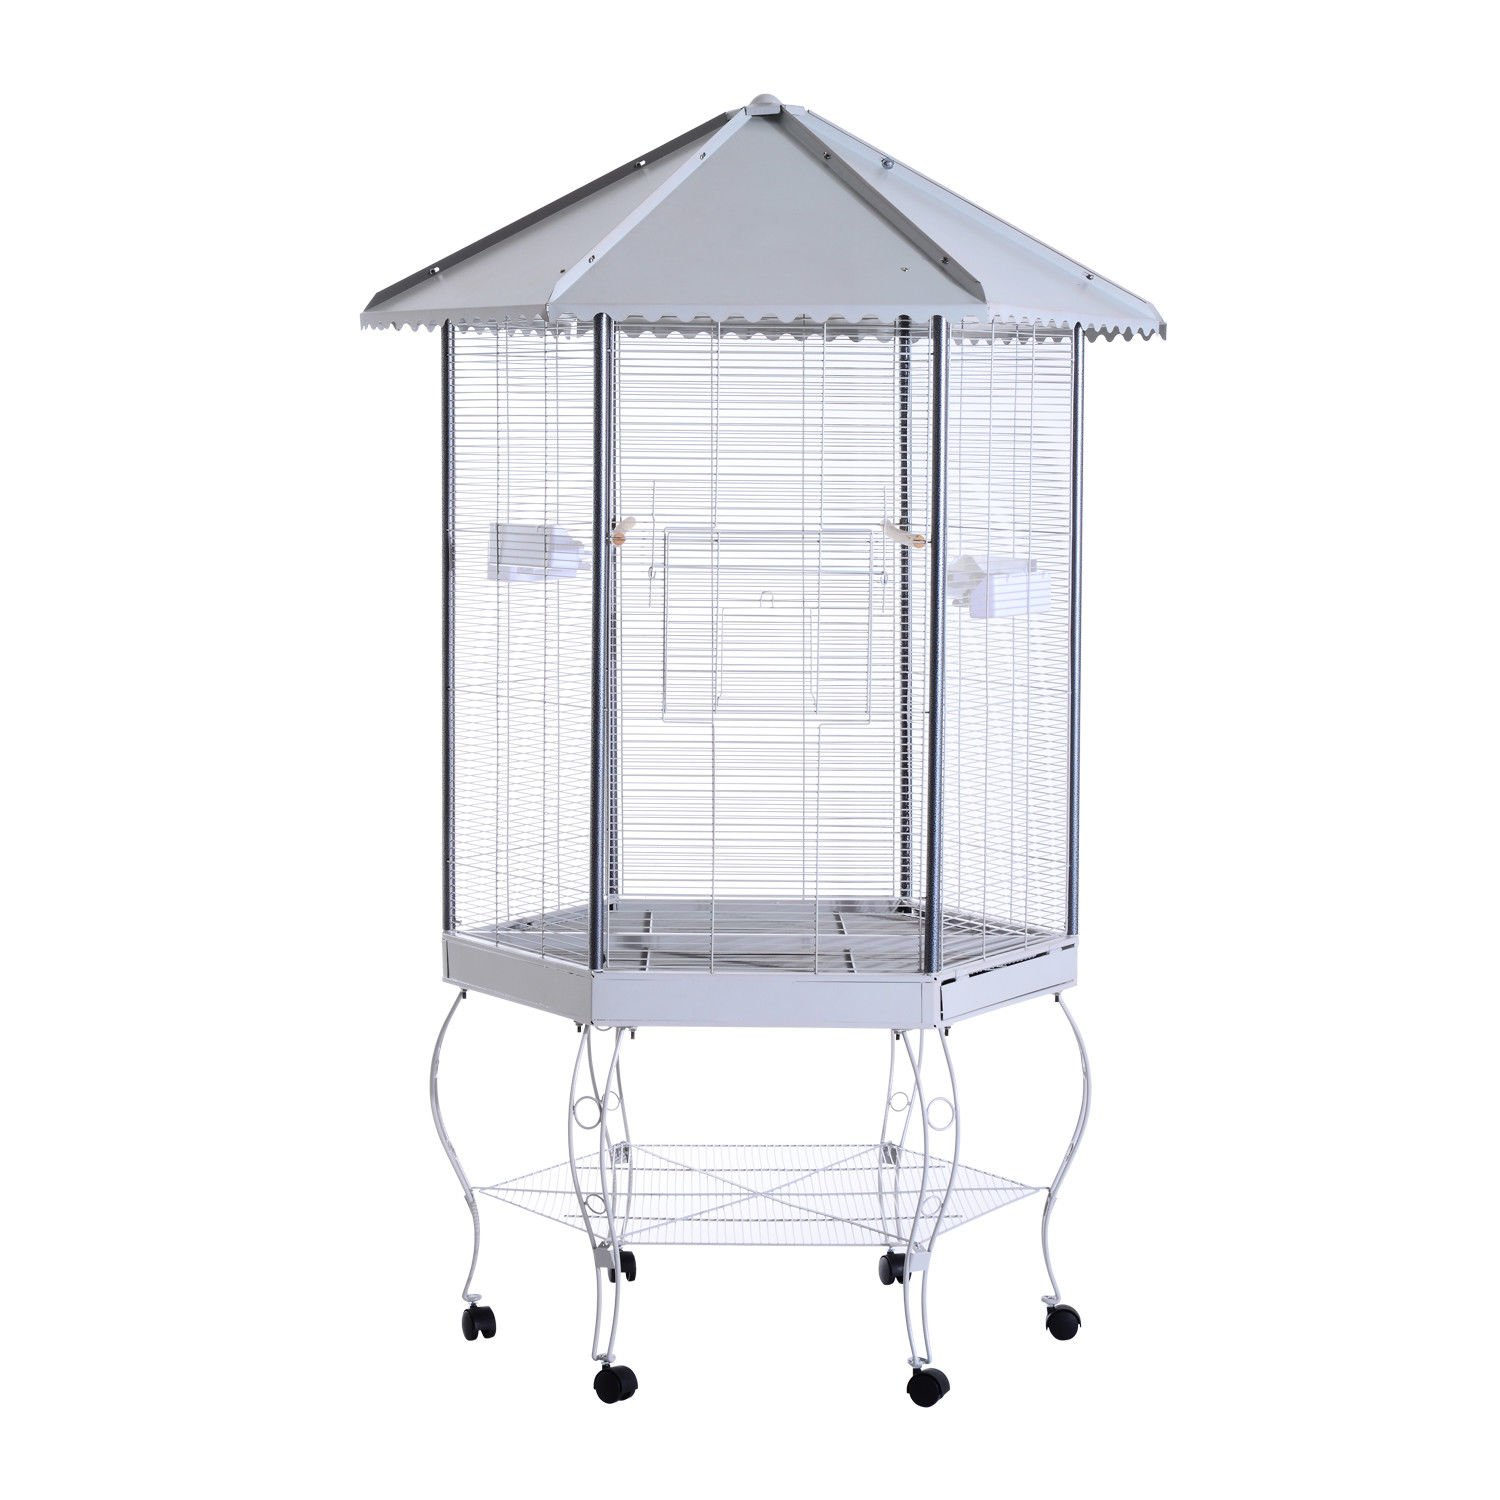 PawHut 44 Hexagon Covered Canopy Portable Aviary Flight Bird Cage With Storage D10-033